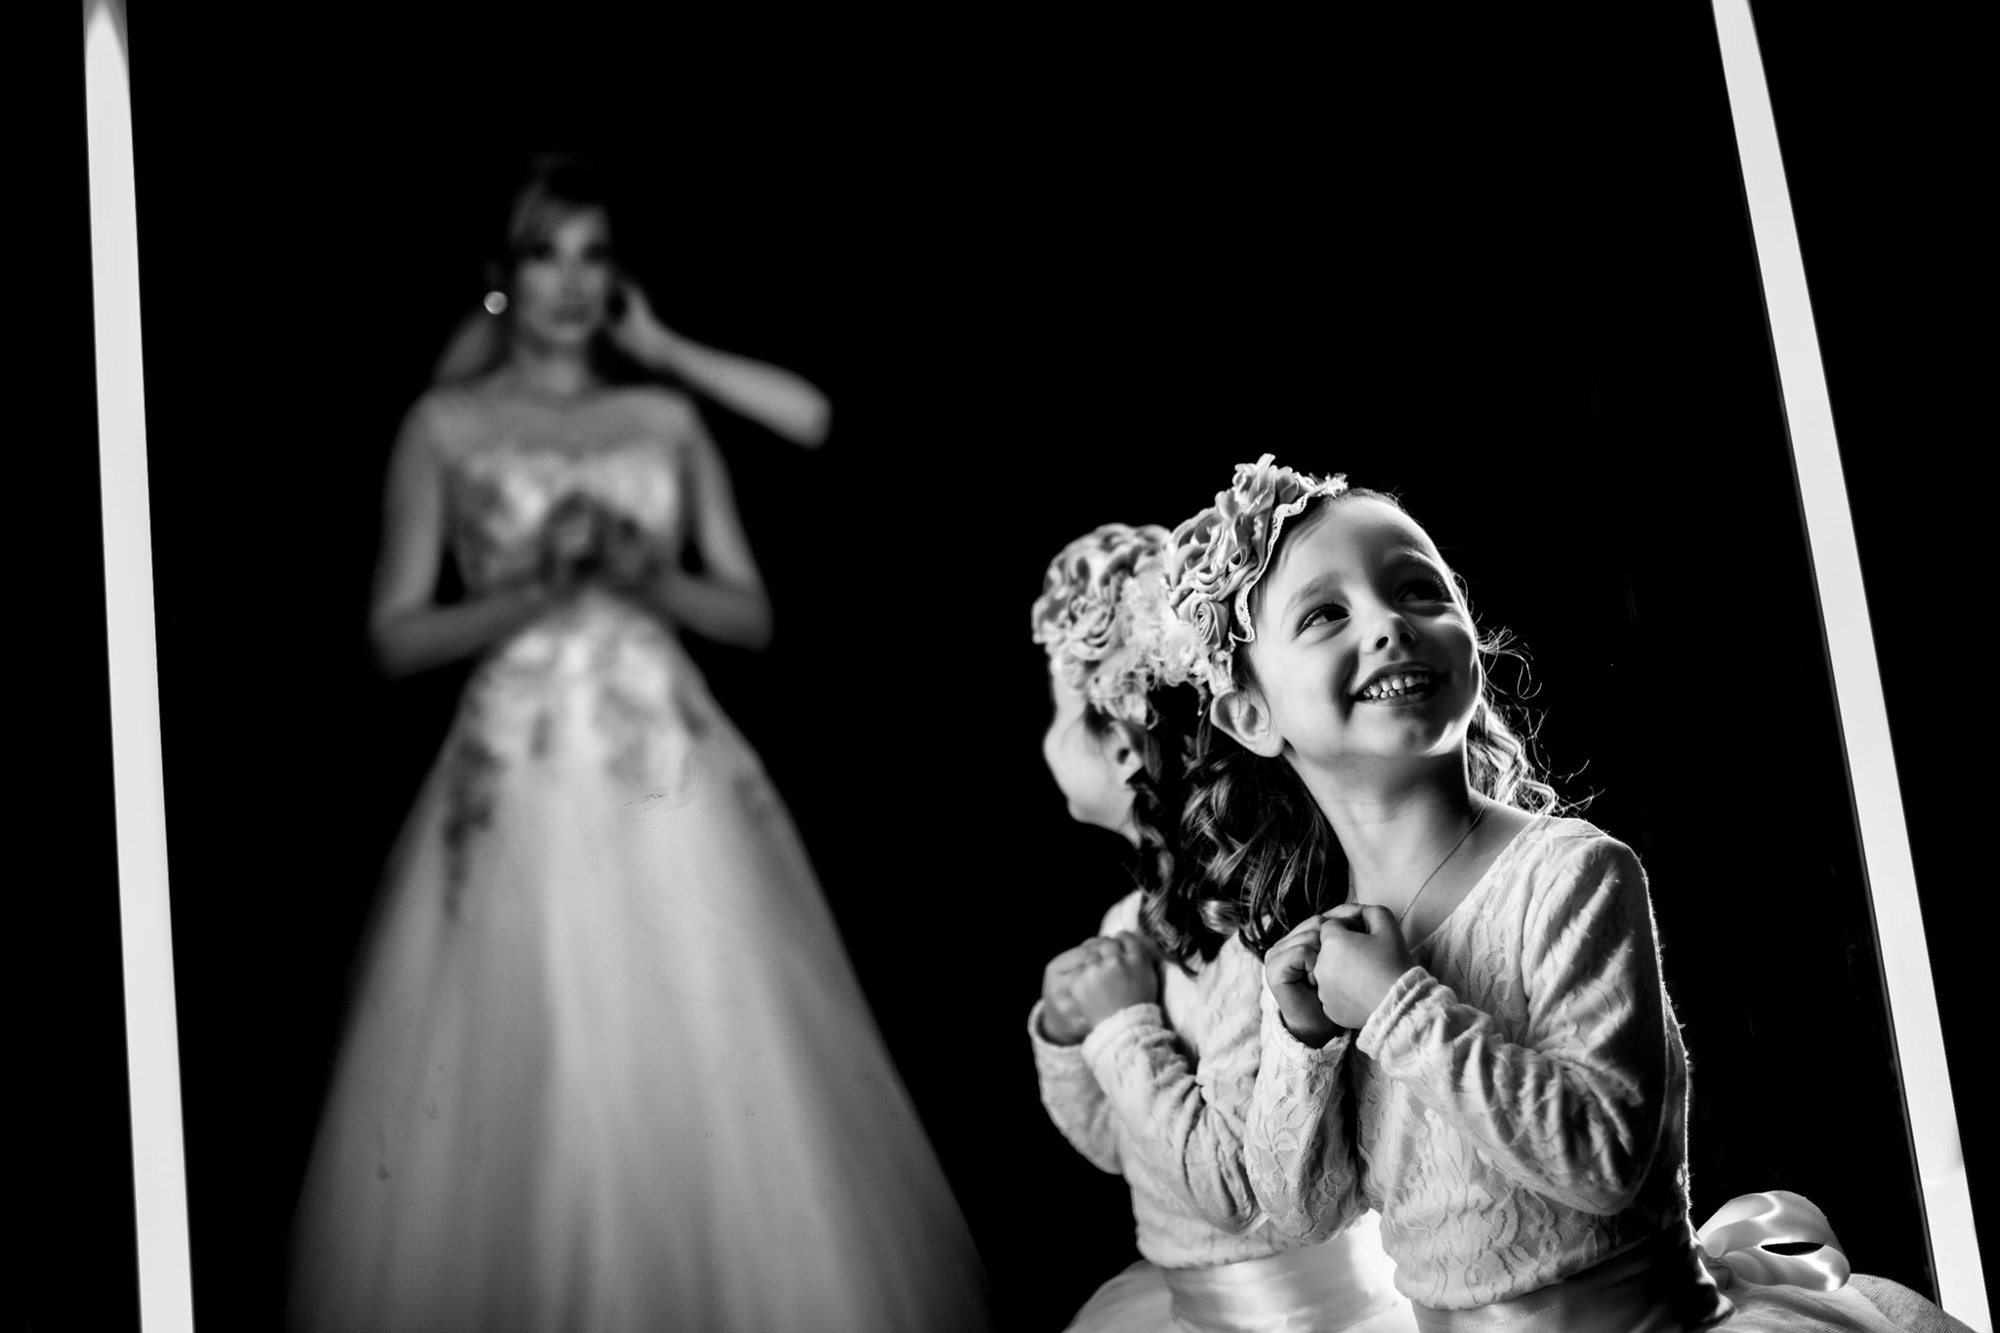 Delighted little girl in ornate hat looks lovingly at bride getting ready - photo by Two Mann Studios